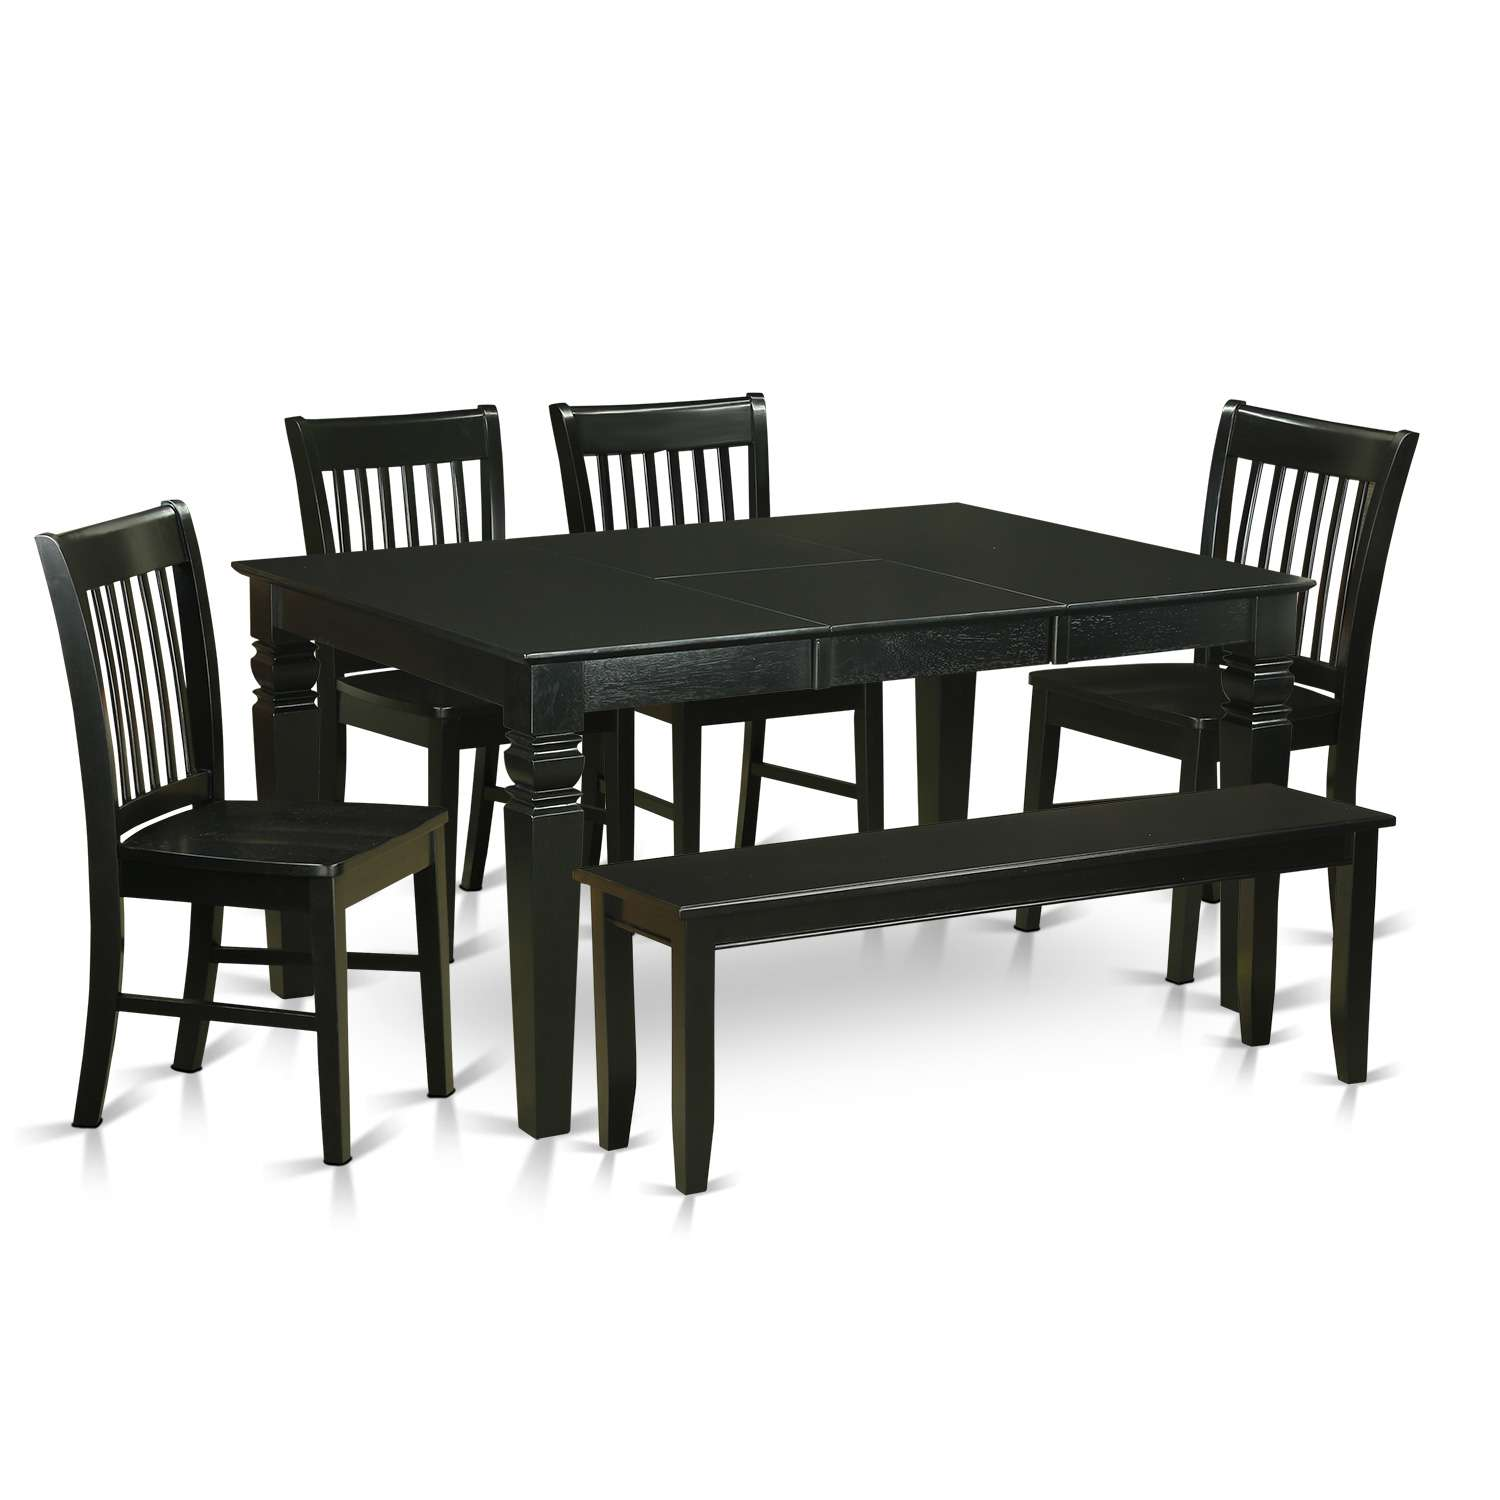 East West Furniture Weston 6 Piece Dining Table Set Table With